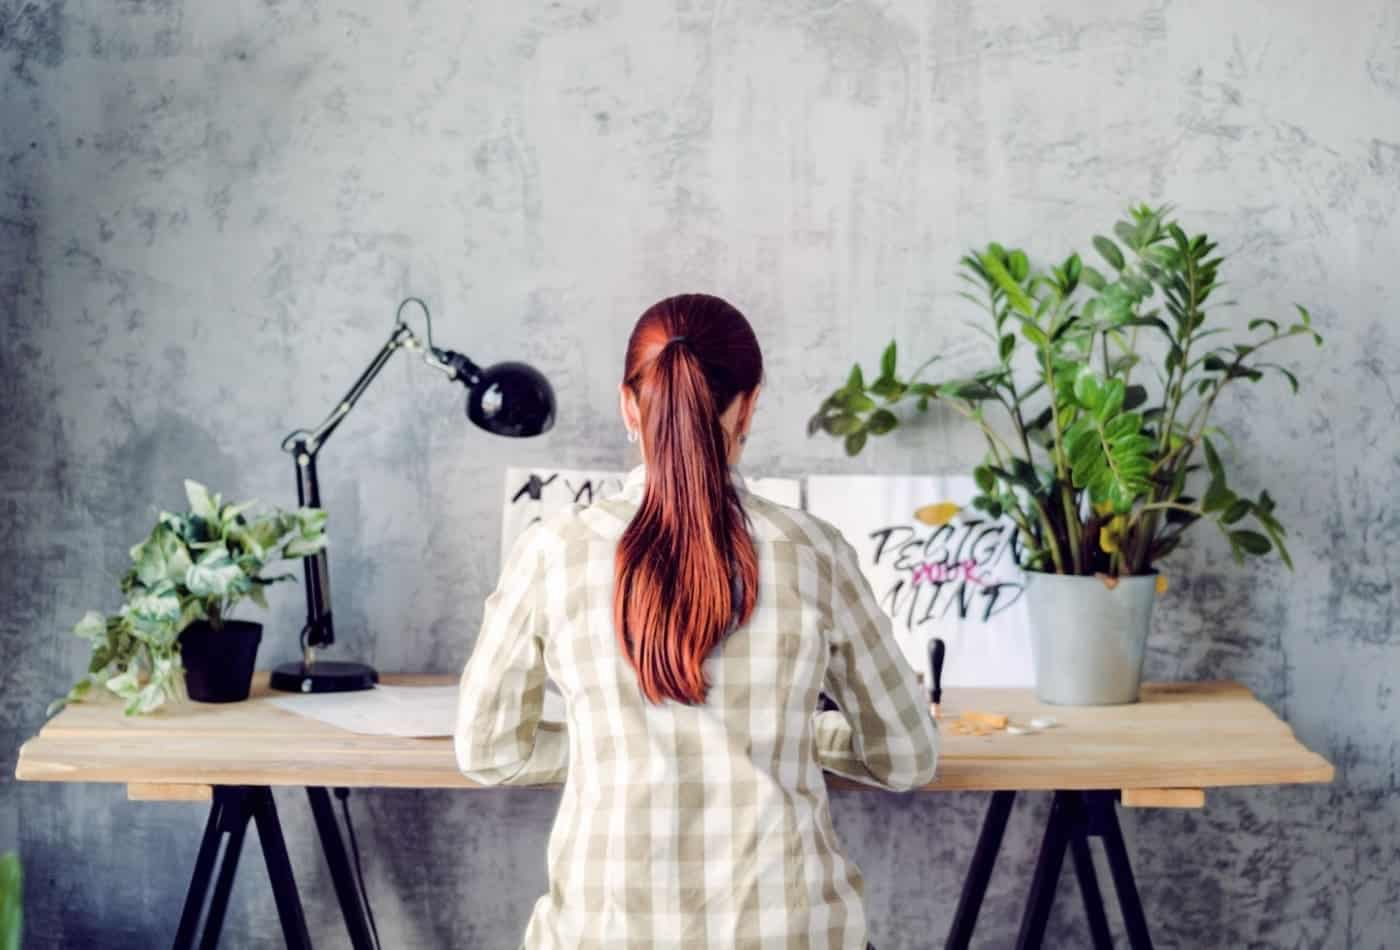 Keep small plants at your work desk to reduce stress, study suggests